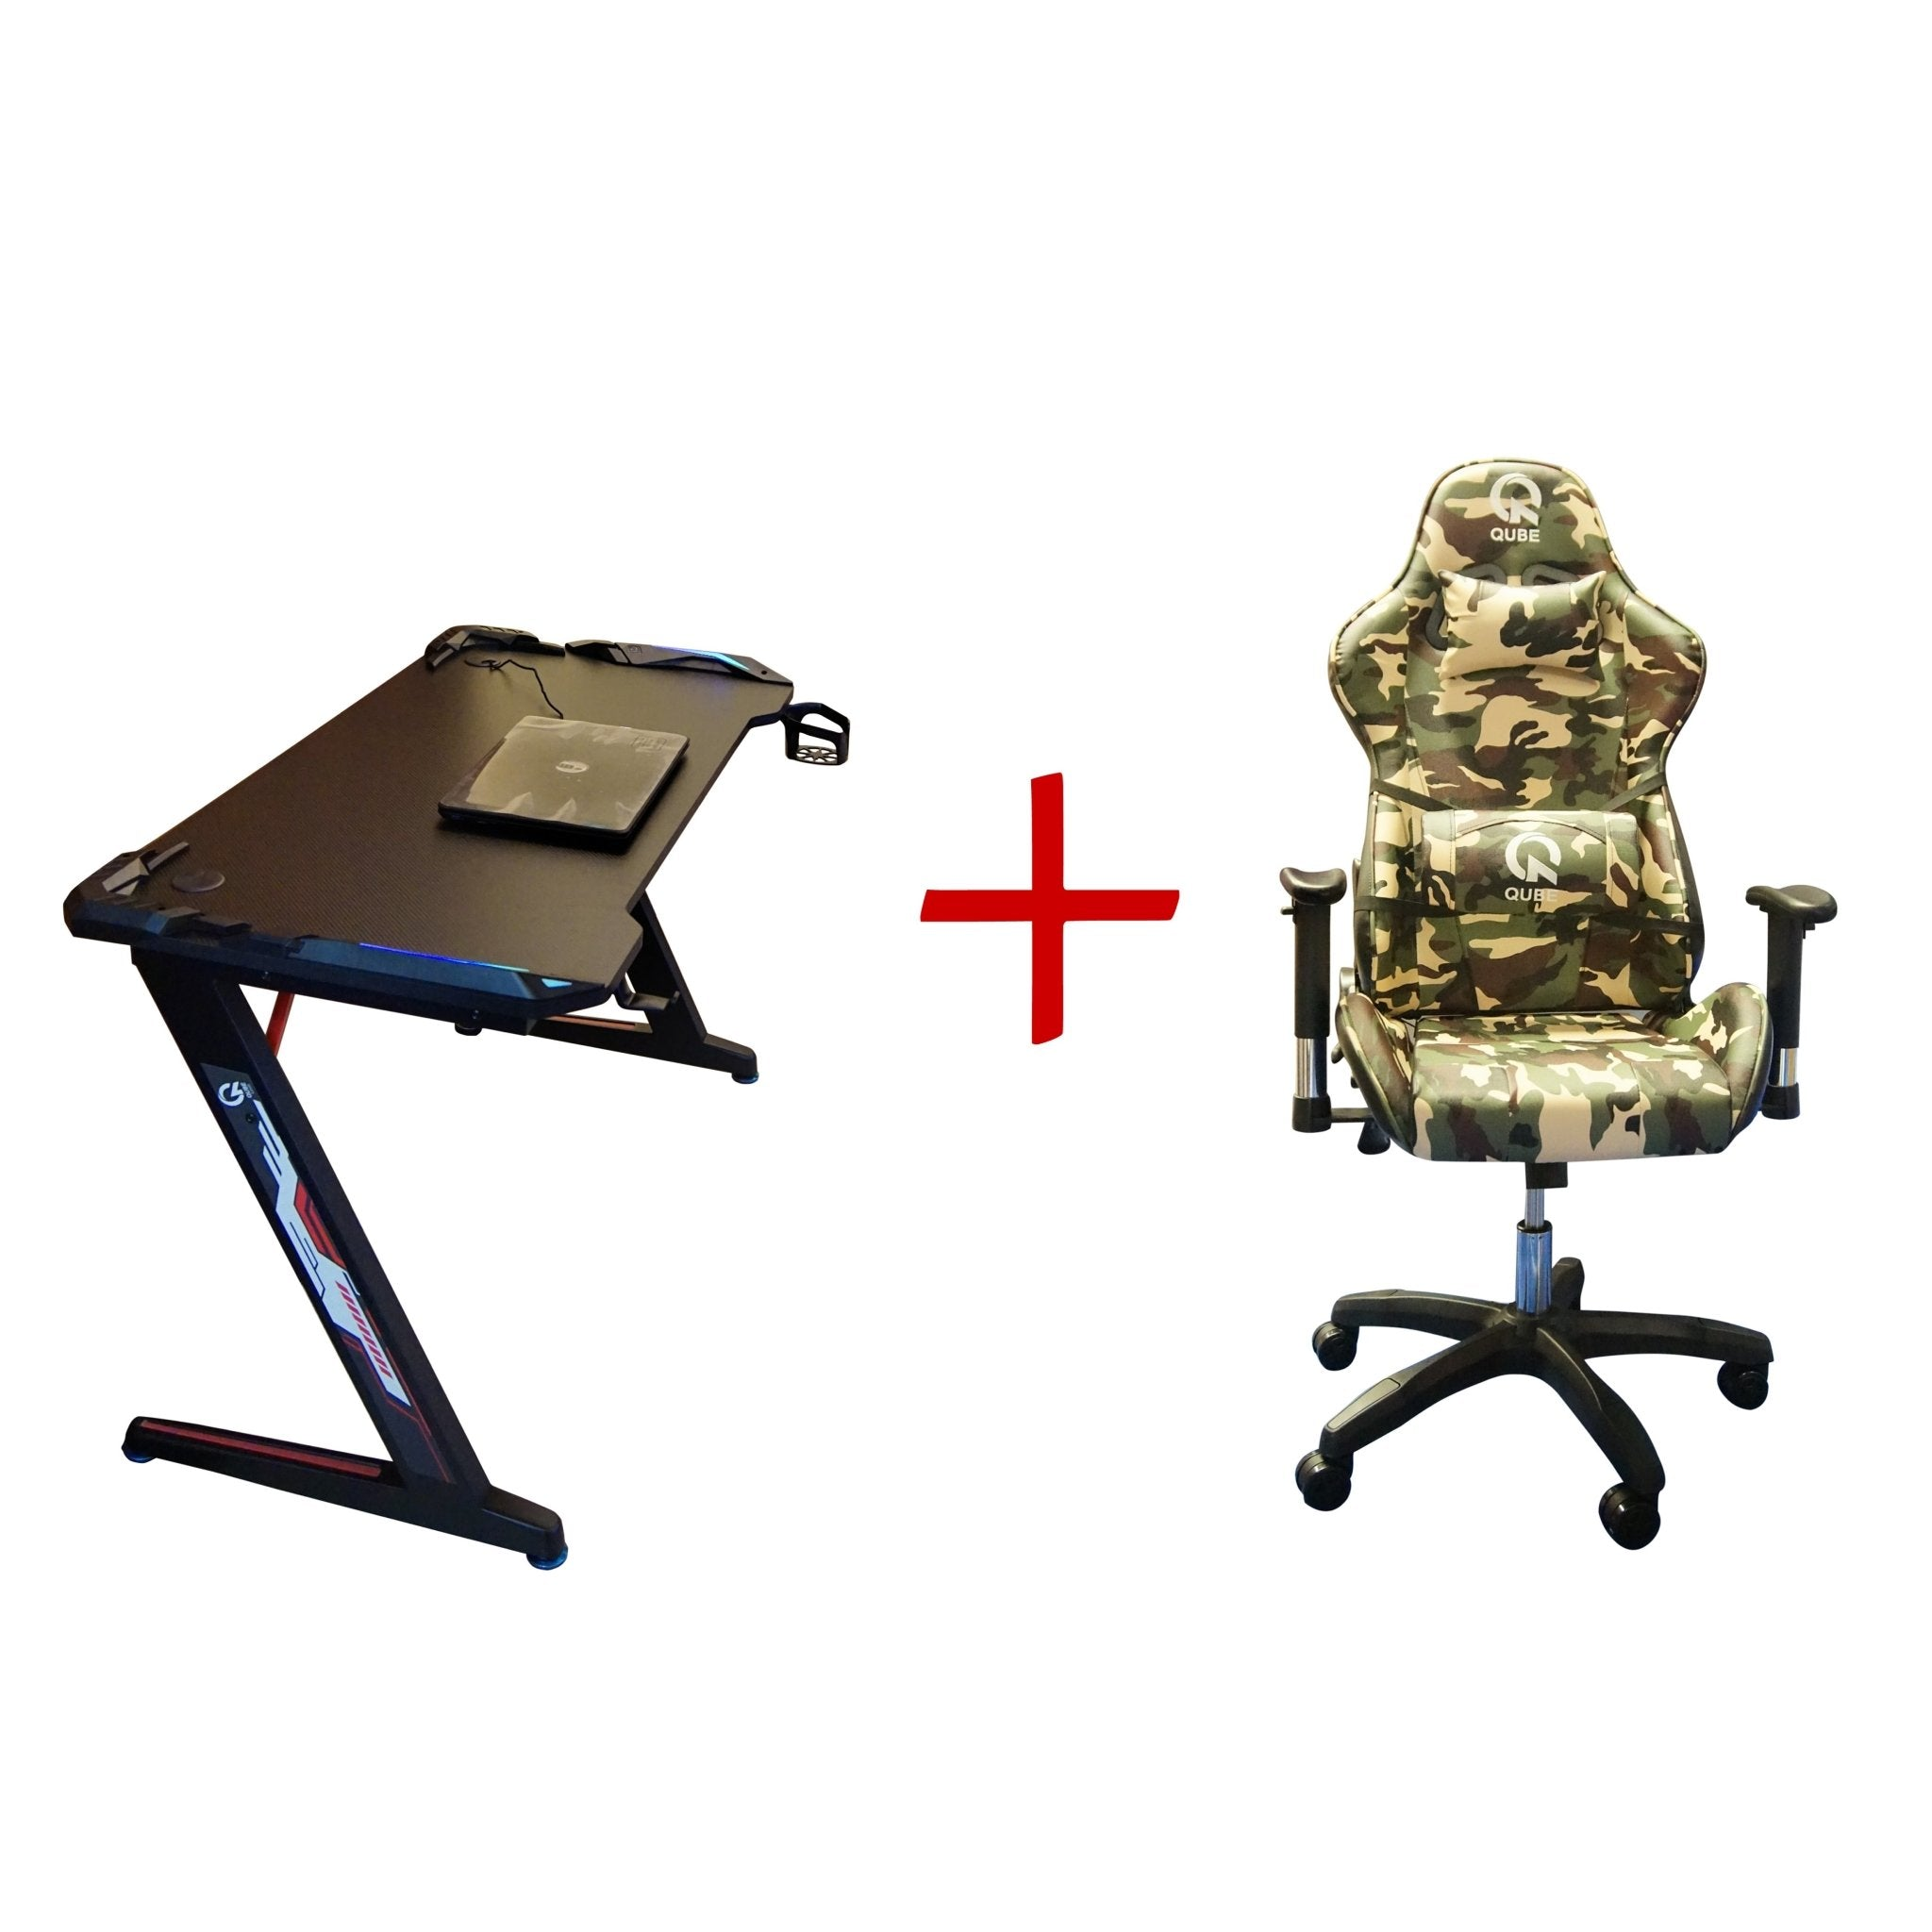 Qube Levin Gaming Table Gaming Chair Bundle Model One Store 974 ستور ٩٧٤